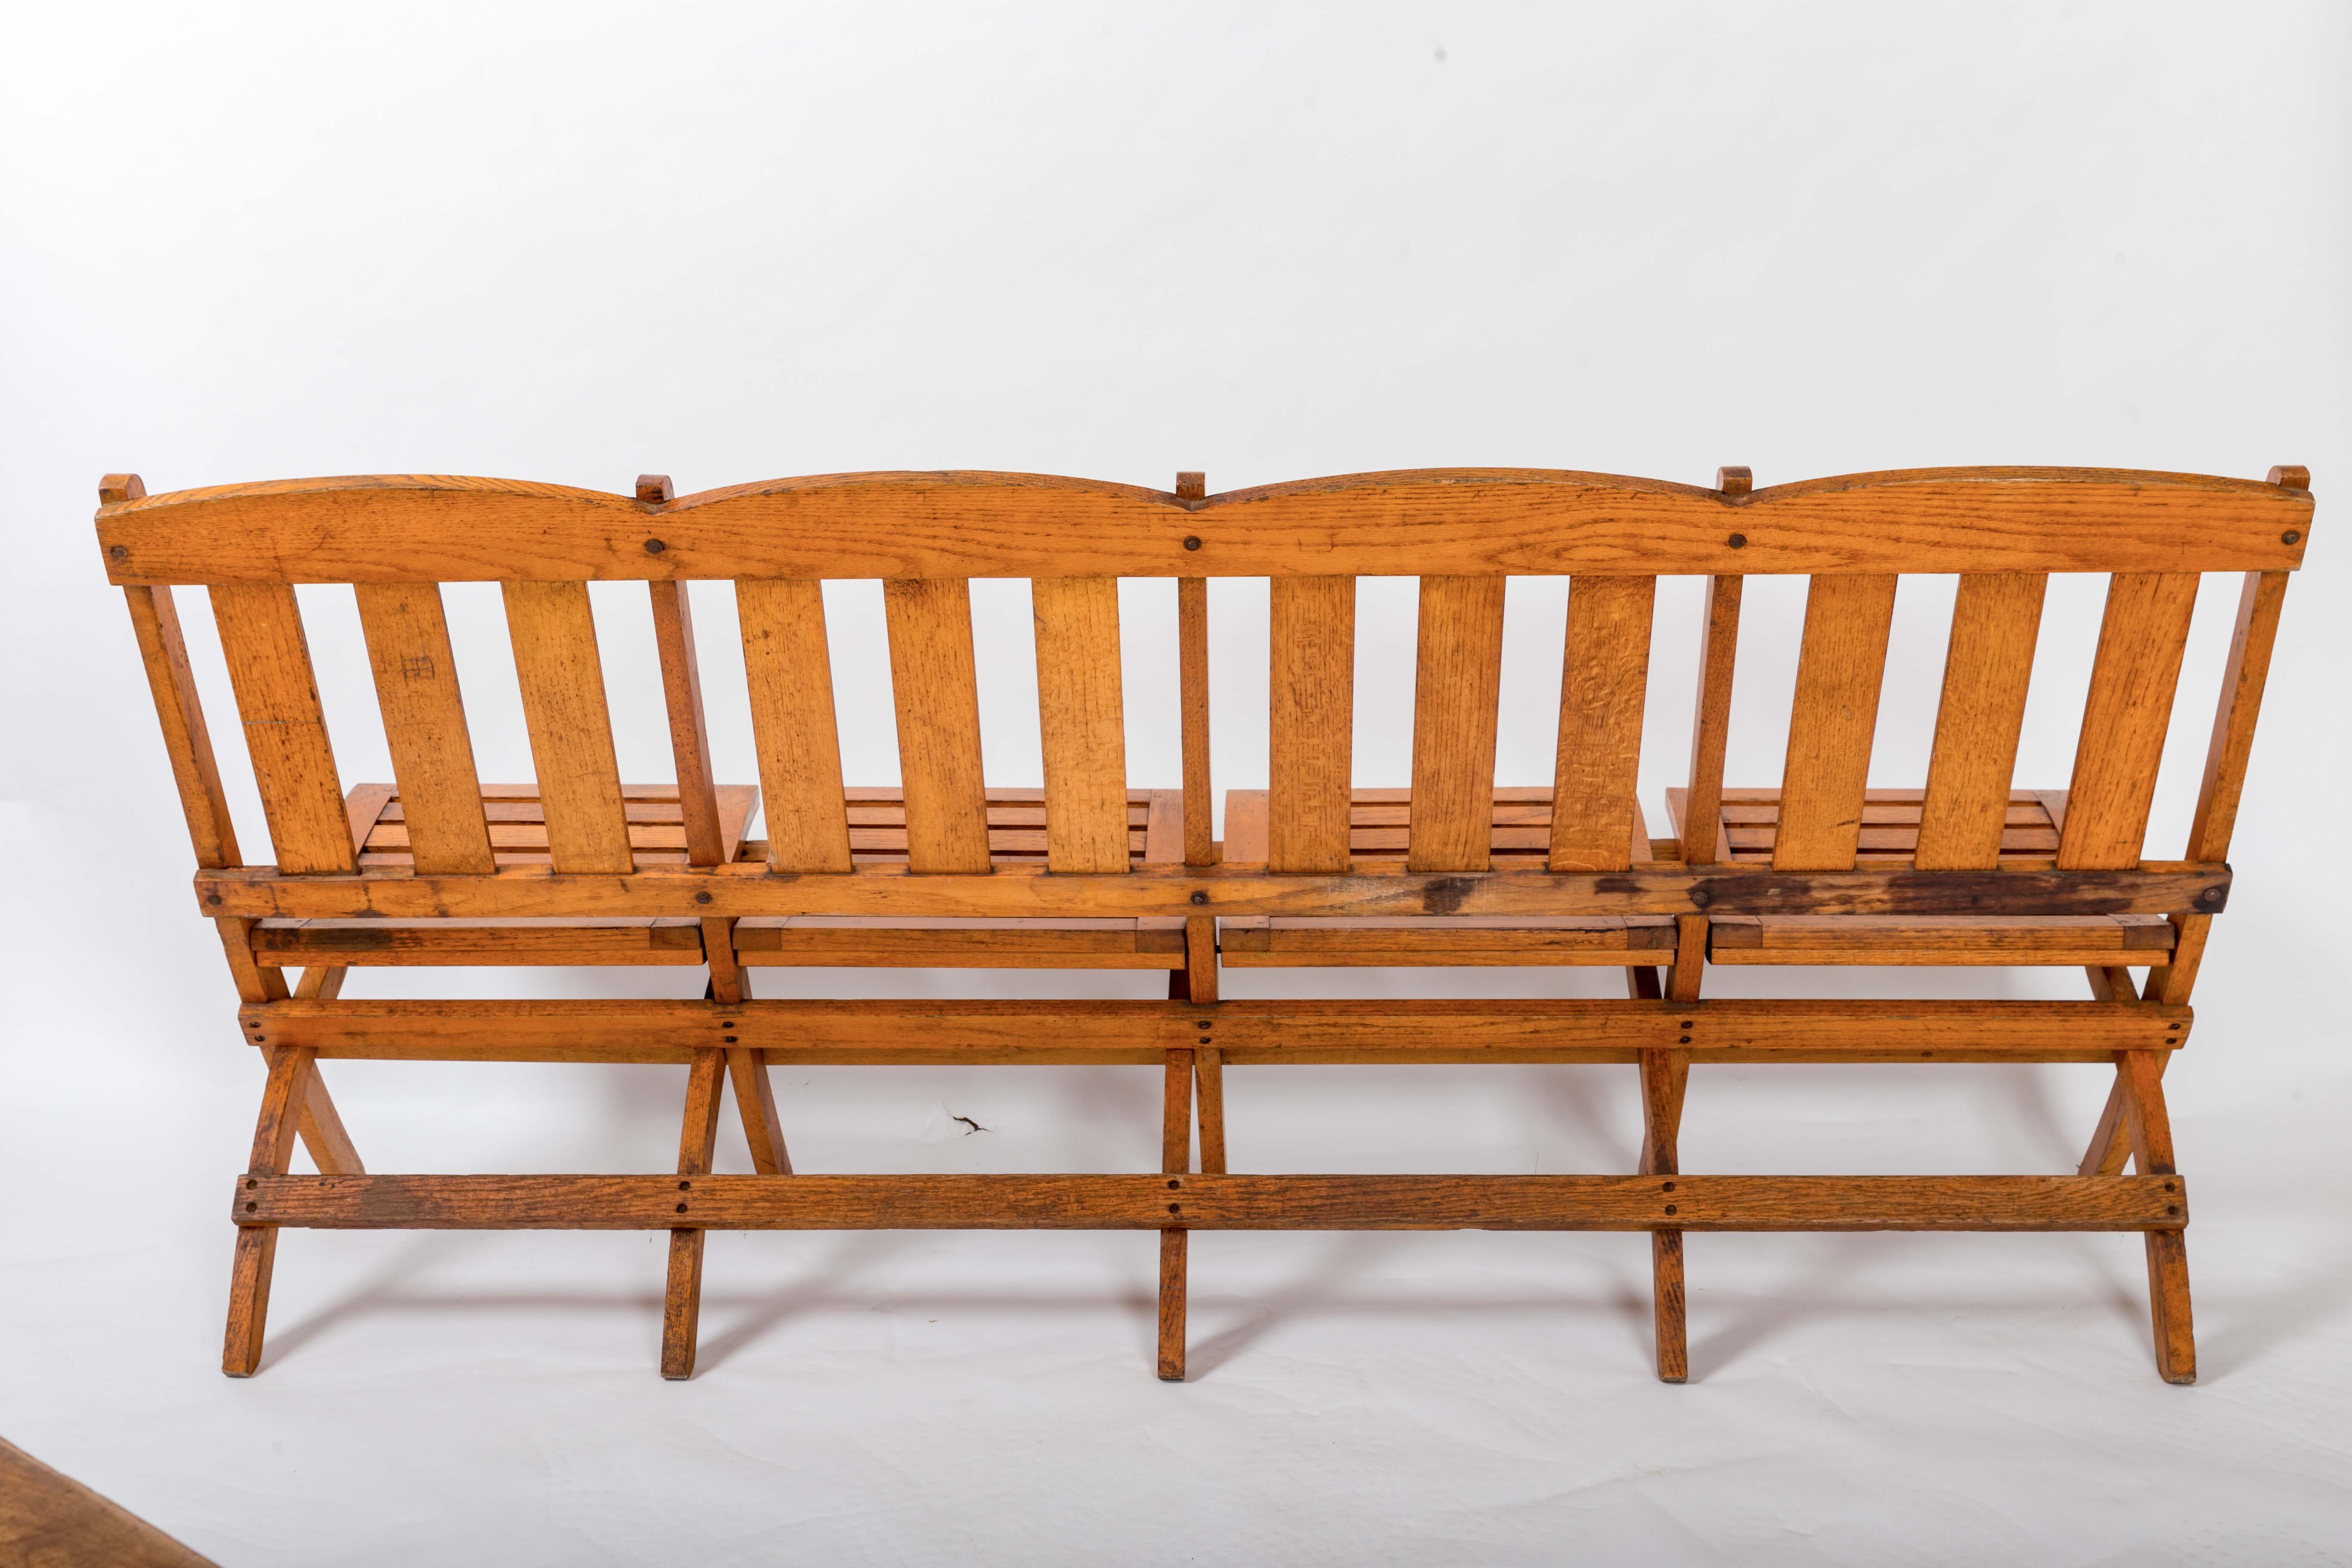 1920s Four-Seat Folding Railroad Bench, Capetown South Africa, circa 1920s  For Sale at 1stdibs